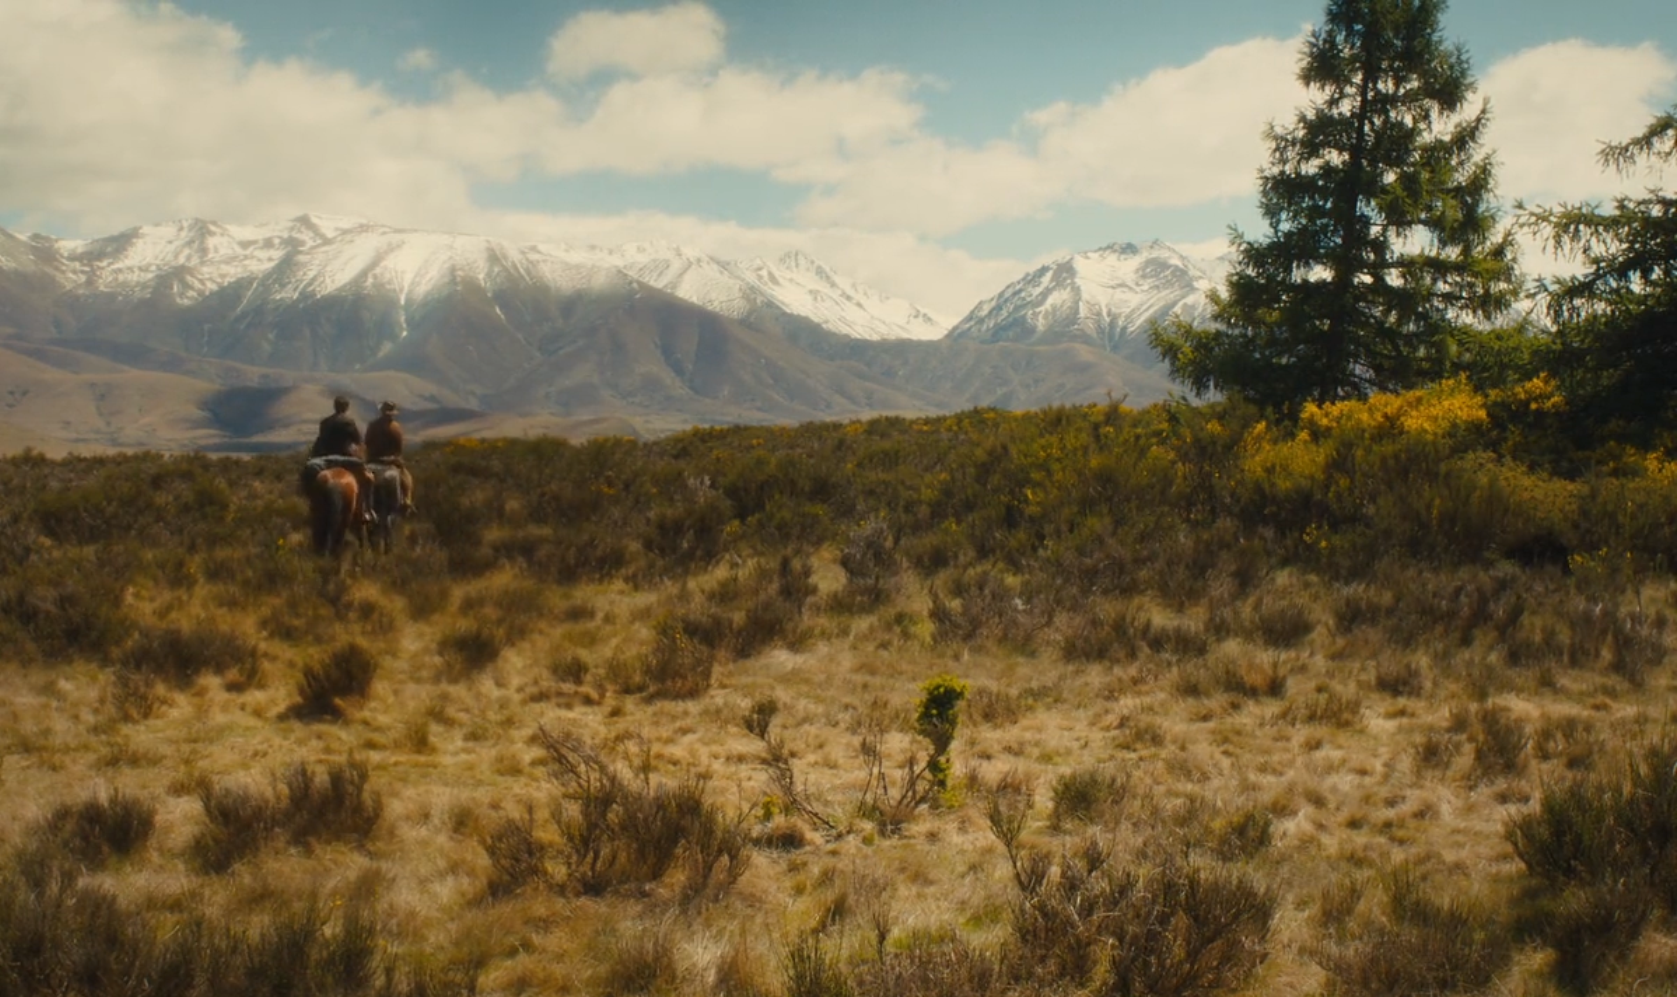 Johan Maclean, Slow West, 2015